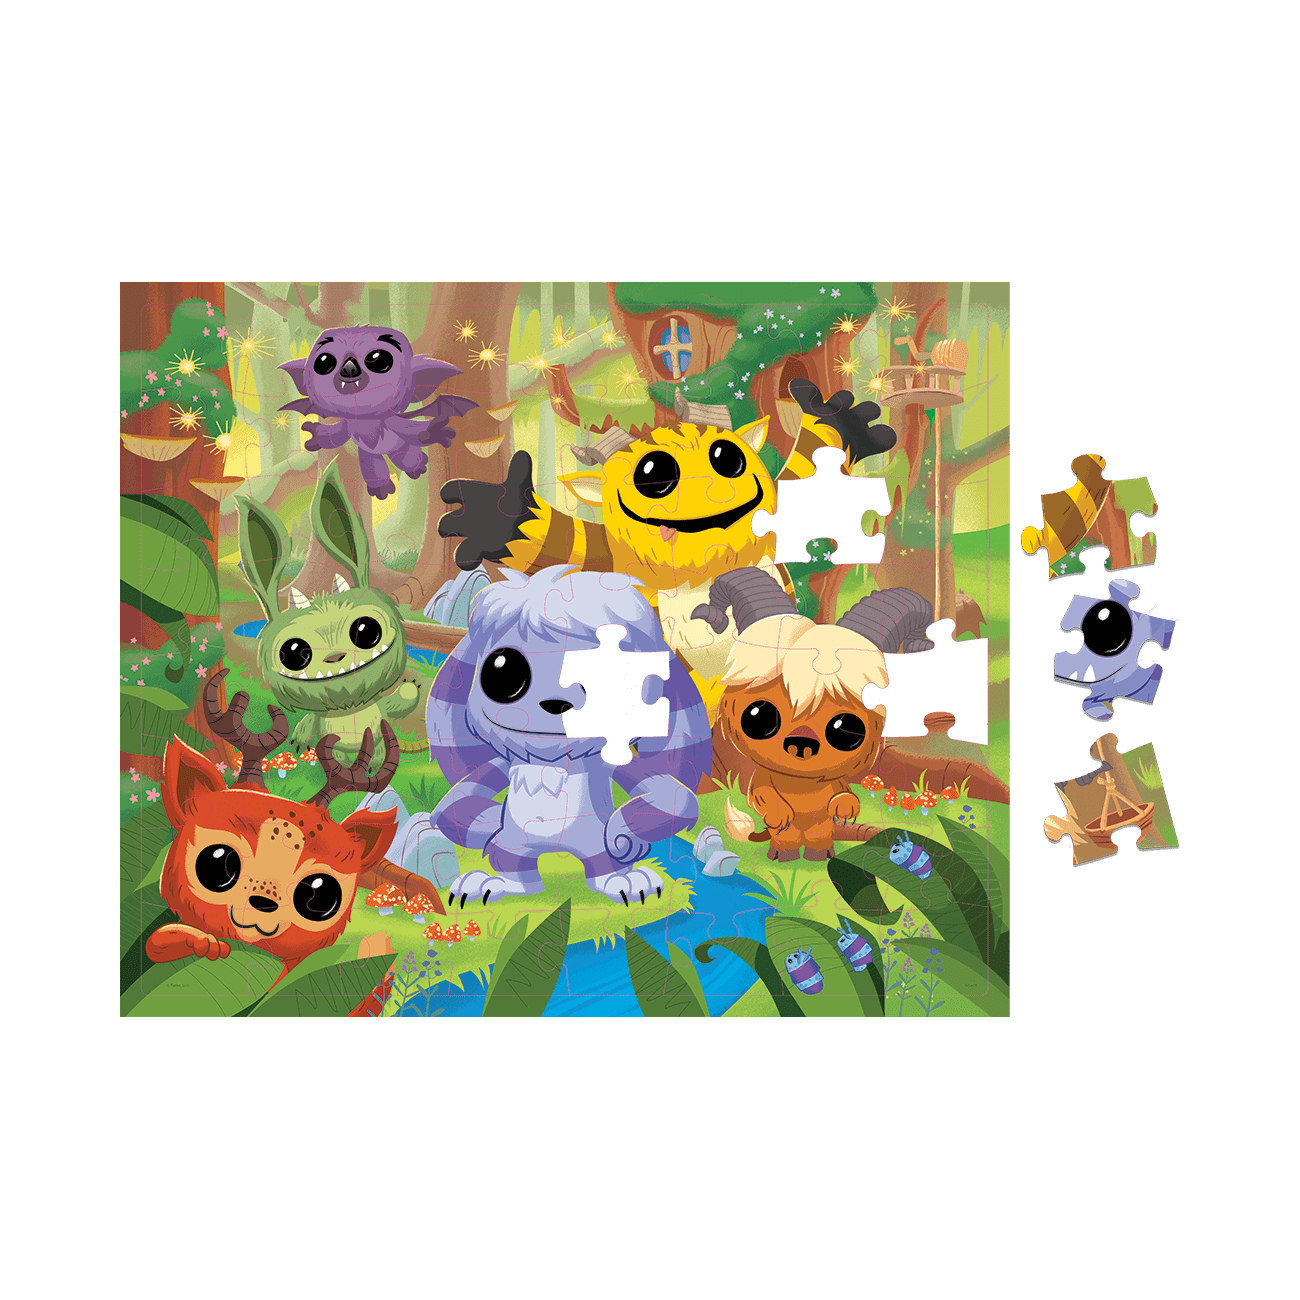 45244_WetmoreForest_Puzzle_GLAM-WEB-df0fdf525845f405b280e1bdfdee92a9.png